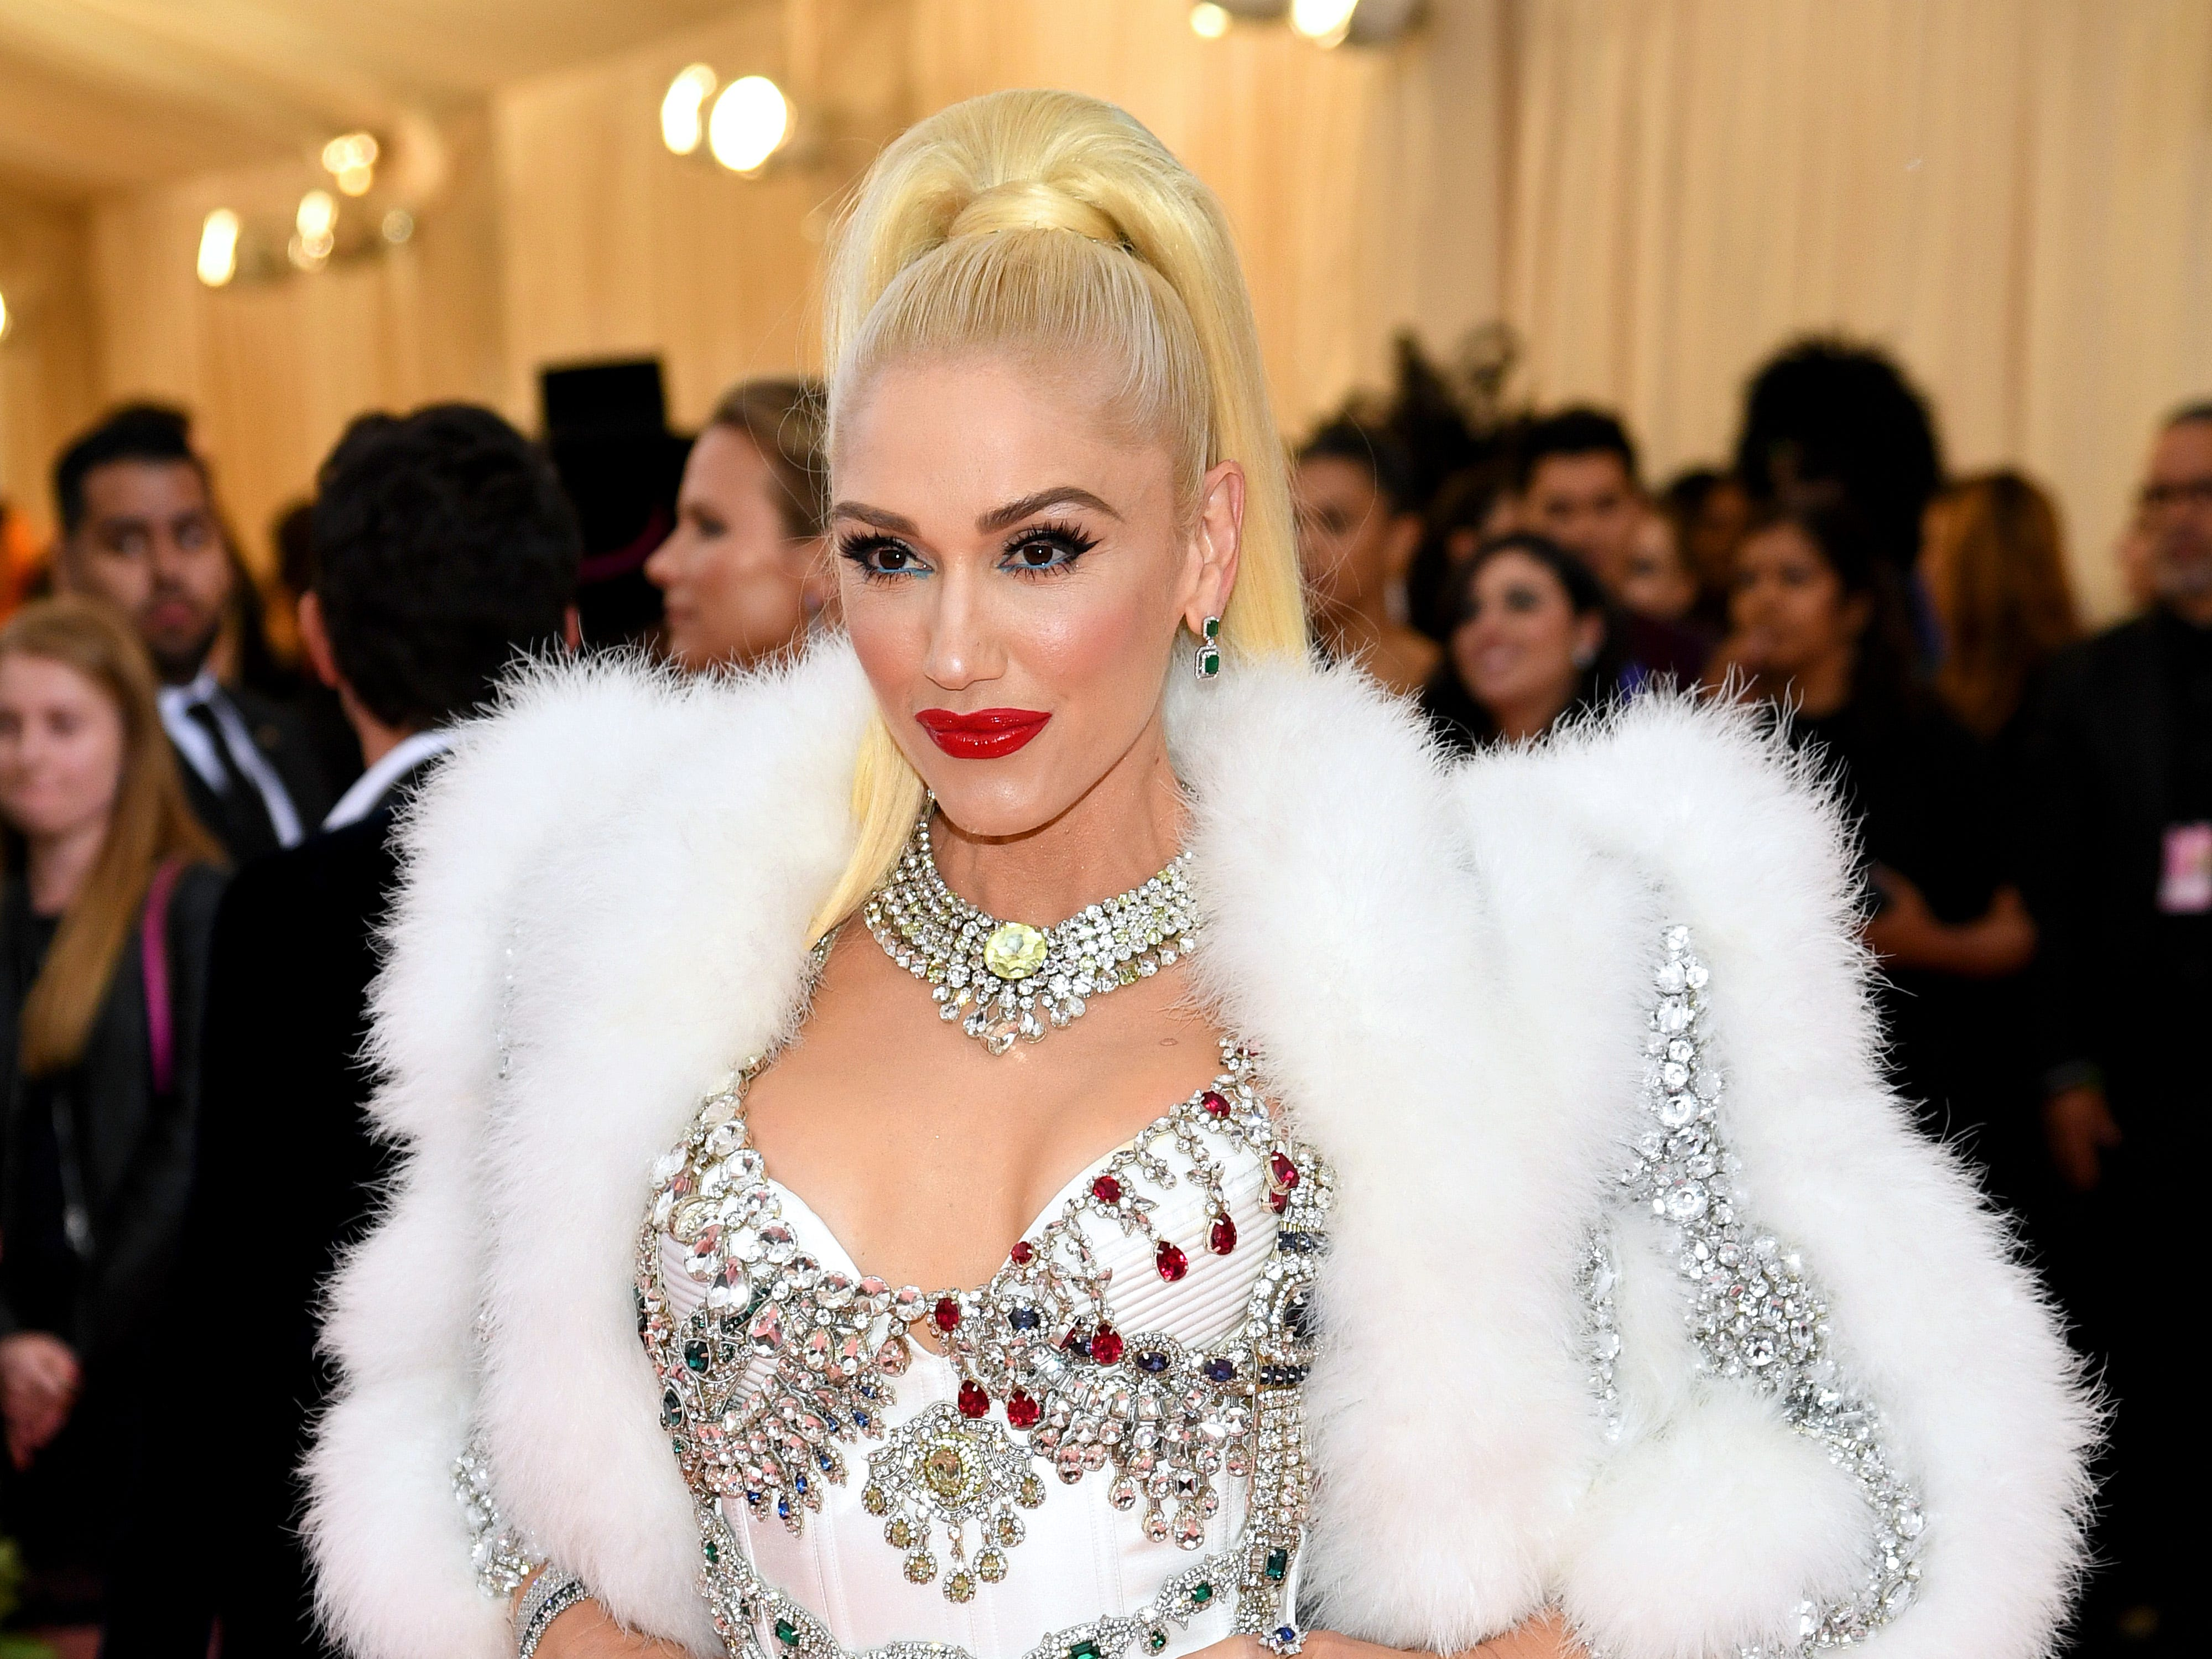 NEW YORK, NEW YORK - MAY 06: Gwen Stefani attends The 2019 Met Gala Celebrating Camp: Notes on Fashion at Metropolitan Museum of Art on May 06, 2019 in New York City. (Photo by Dimitrios Kambouris/Getty Images for The Met Museum/Vogue) ORG XMIT: 775333959 ORIG FILE ID: 1147426927